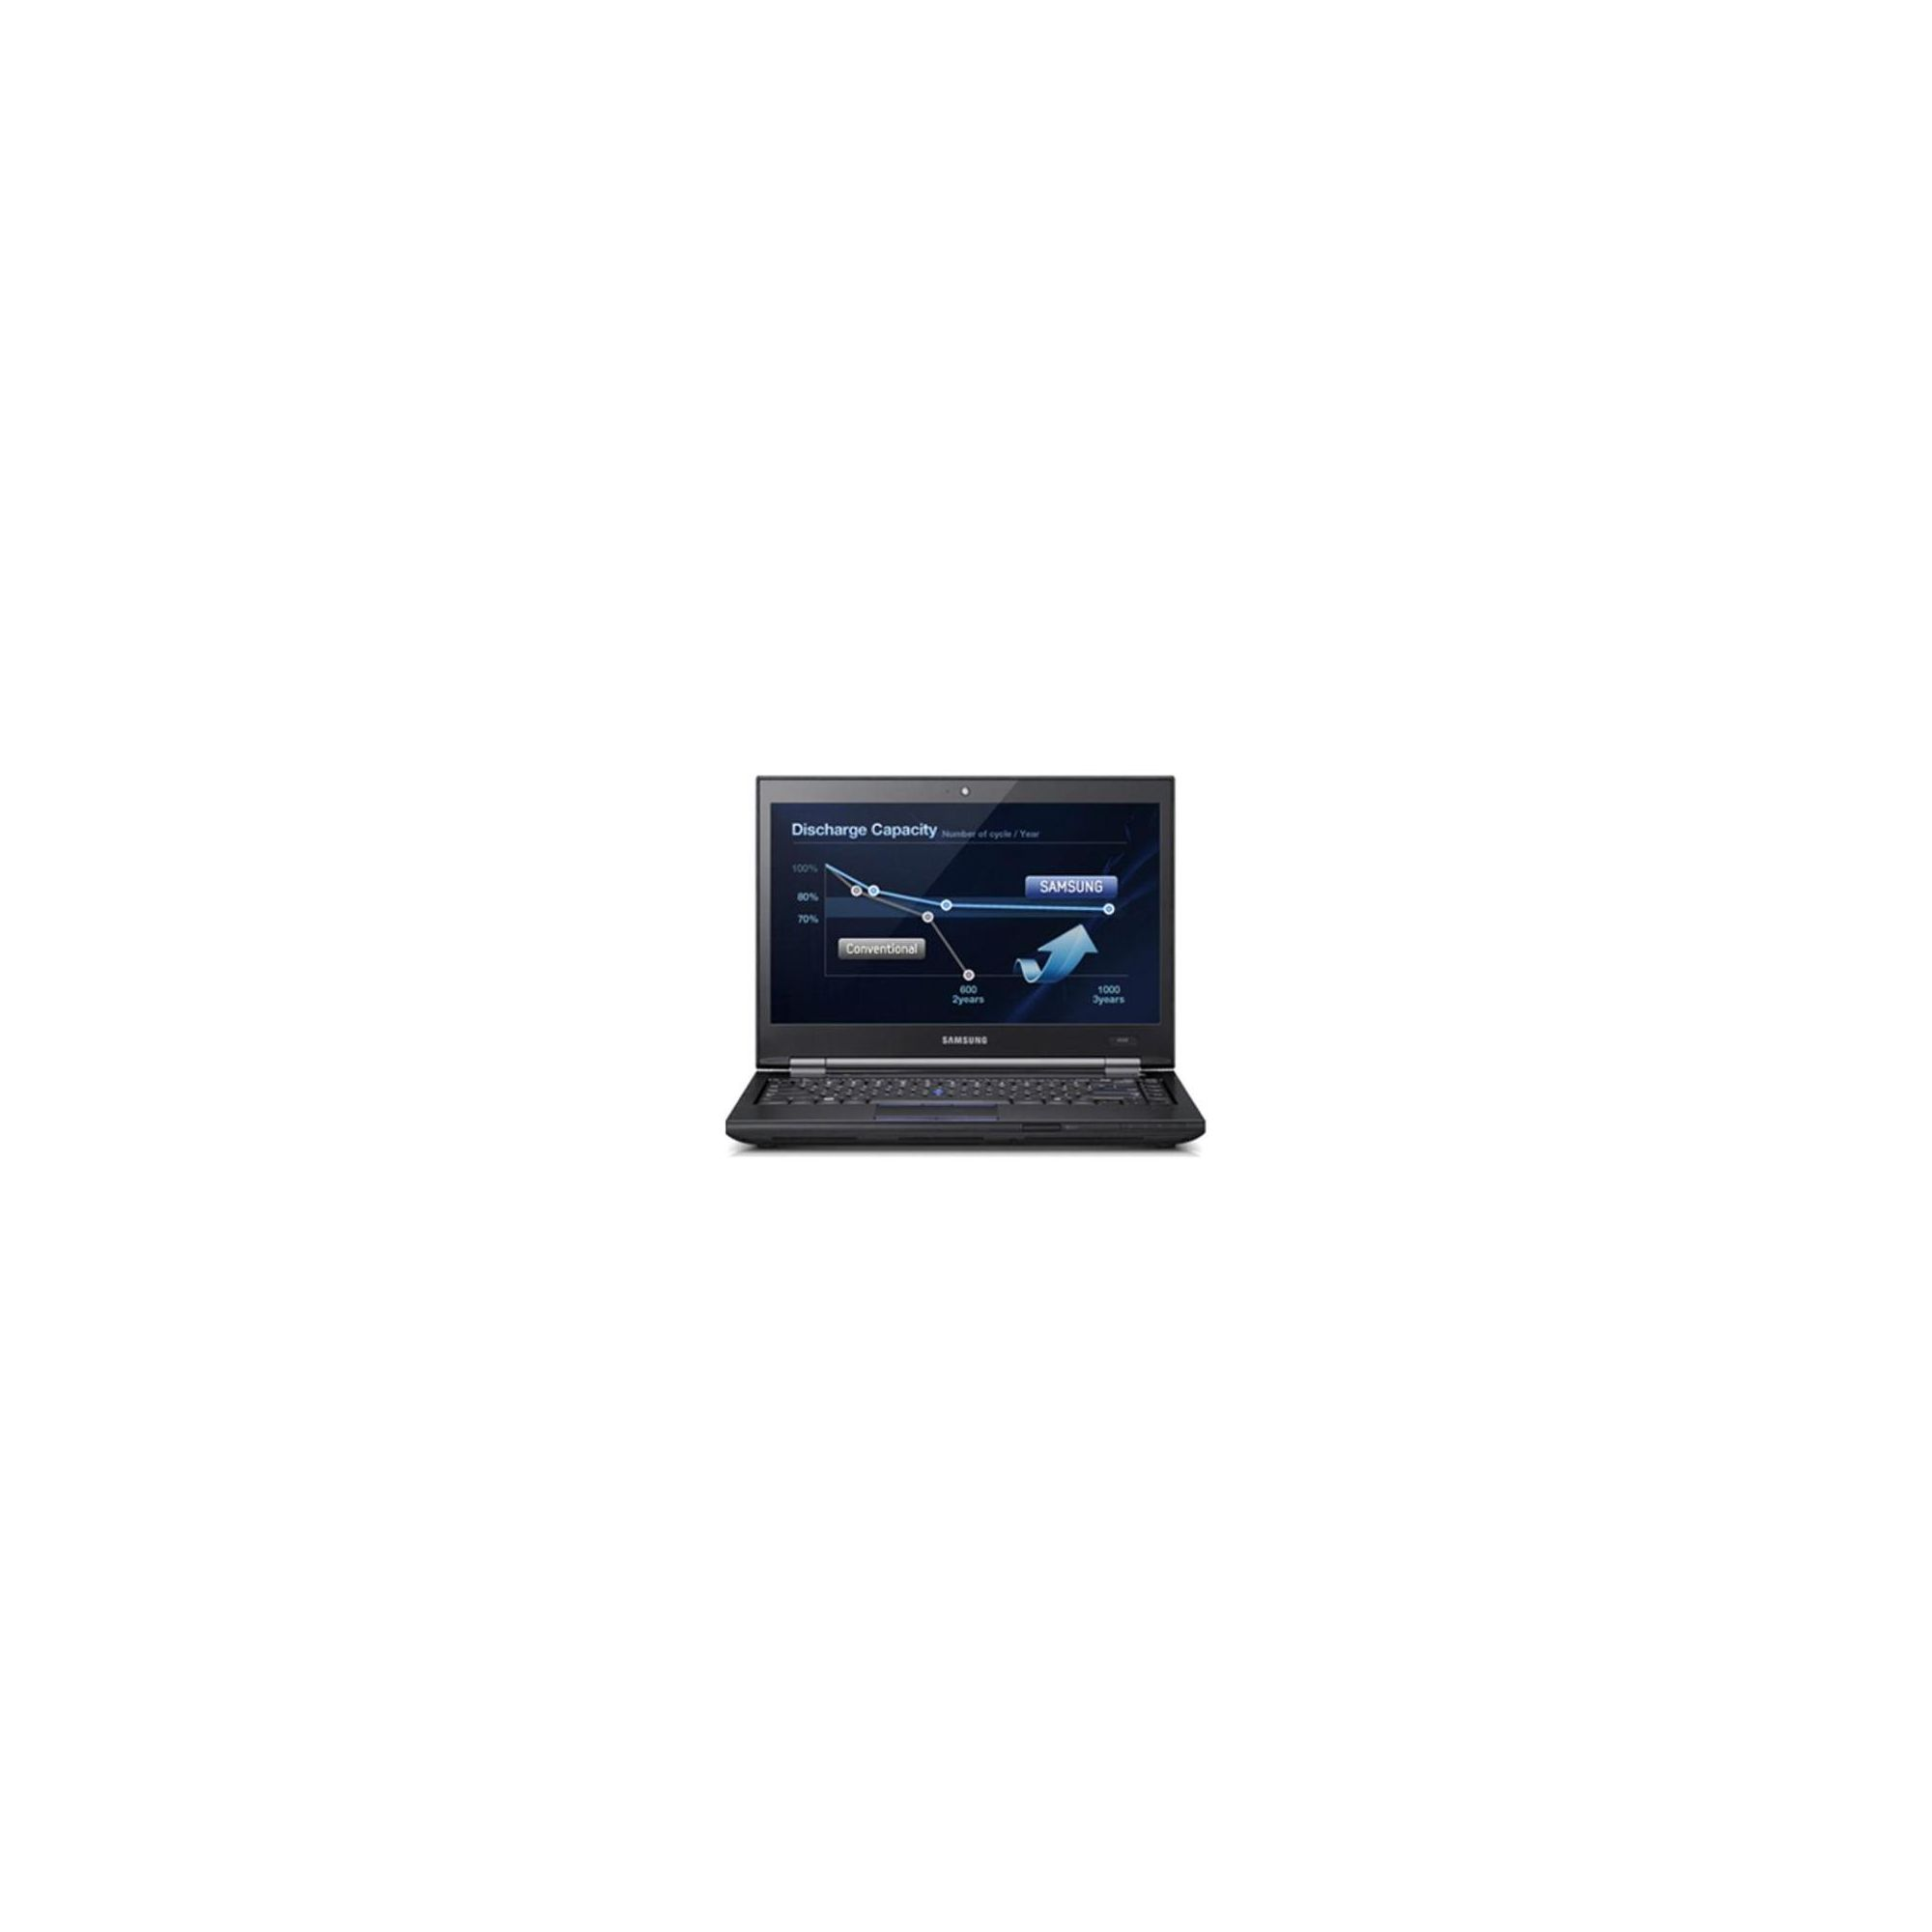 Samsung 400B4B (14 inch) Notebook Core i5 (2550M) 2.5GHz 4GB 500GB DVD-SM DL WLAN BT Webcam Windows 7 Pro 64-bit (HD Graphics) at Tesco Direct